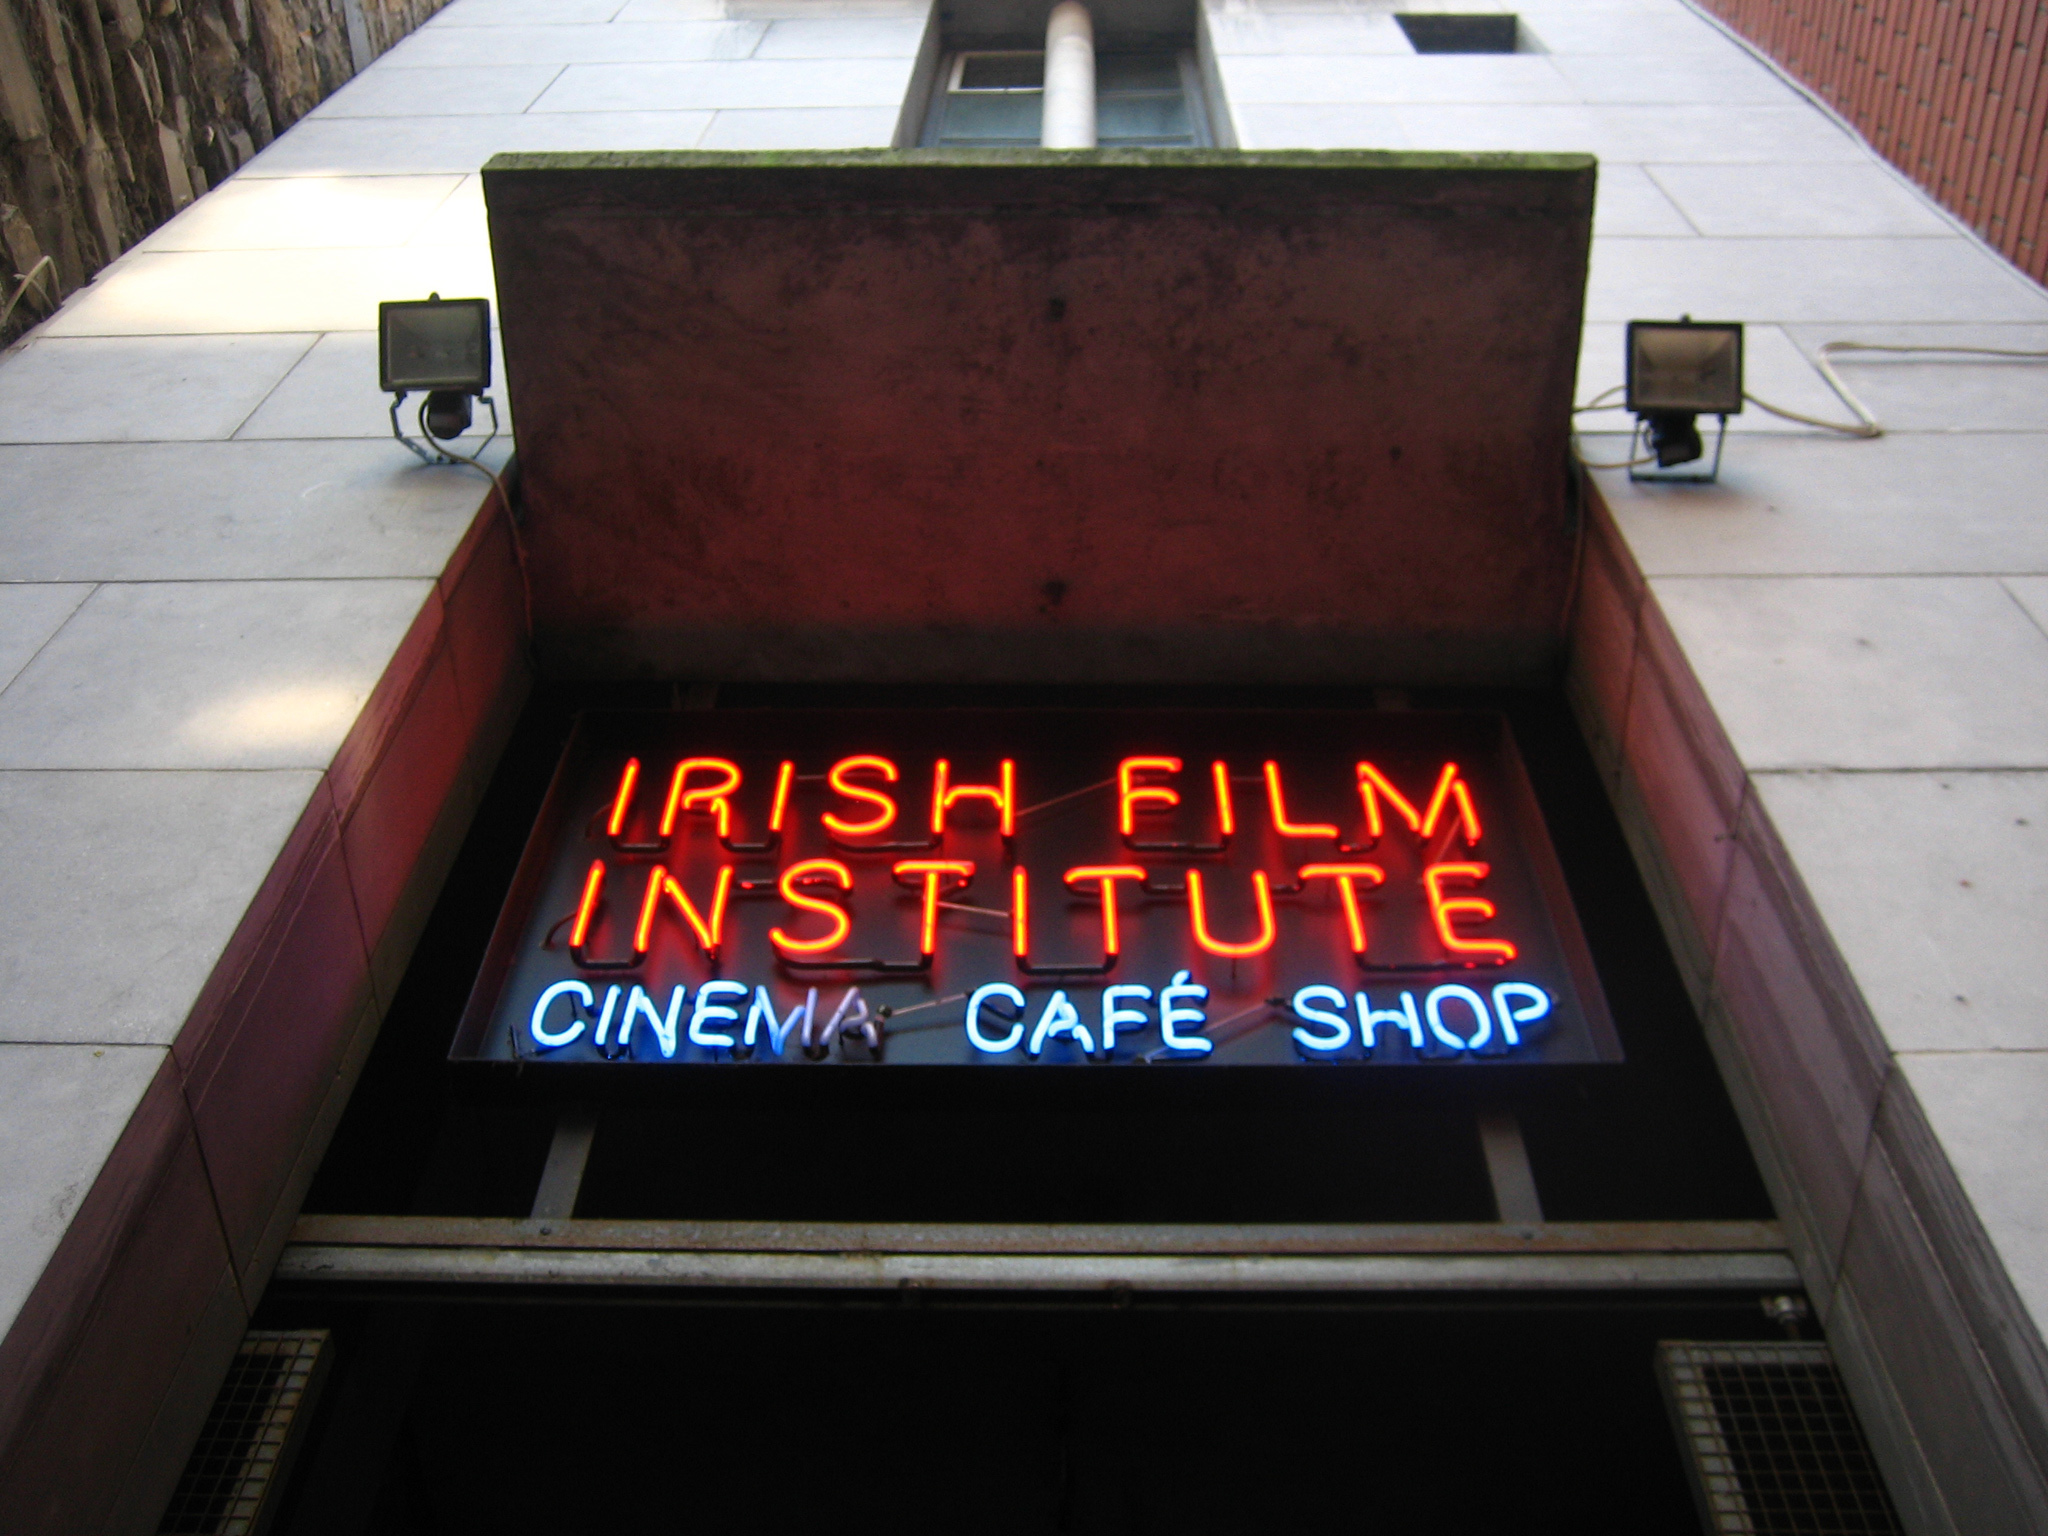 The entrance to the Irish Film Institute in Dublin